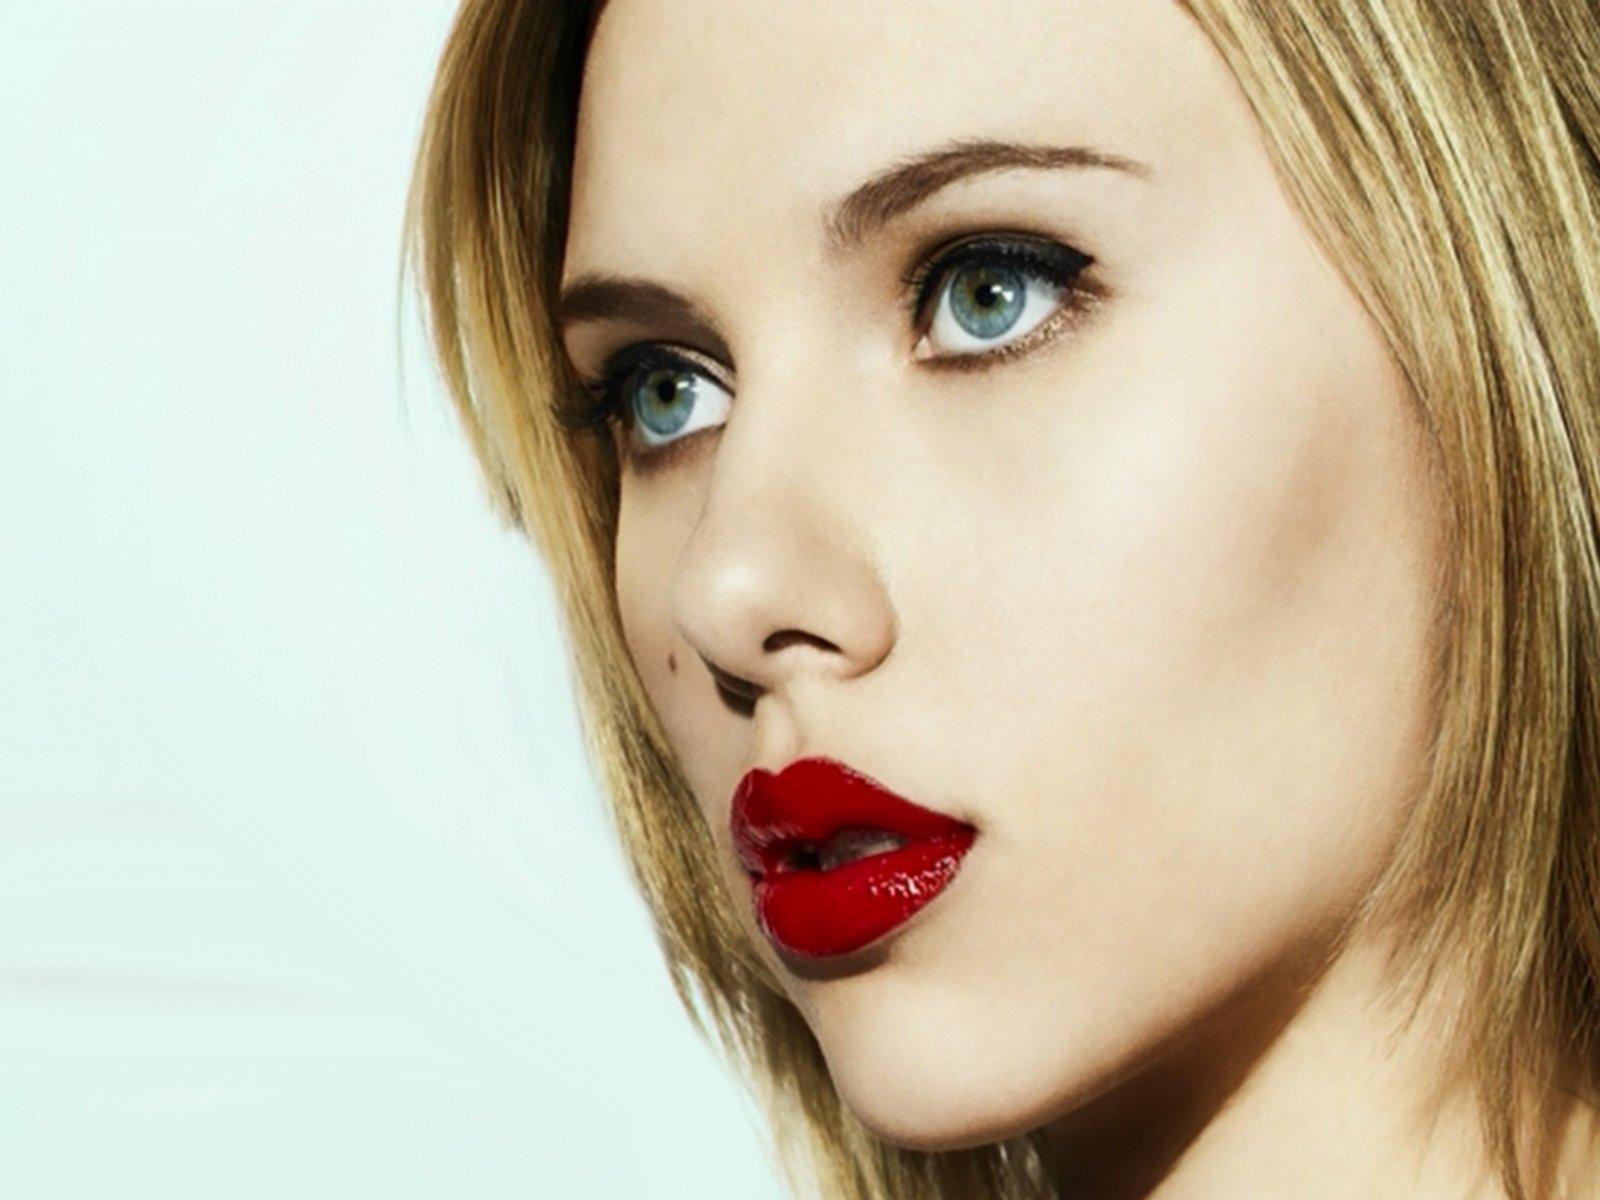 scarlett johansson model - photo #42